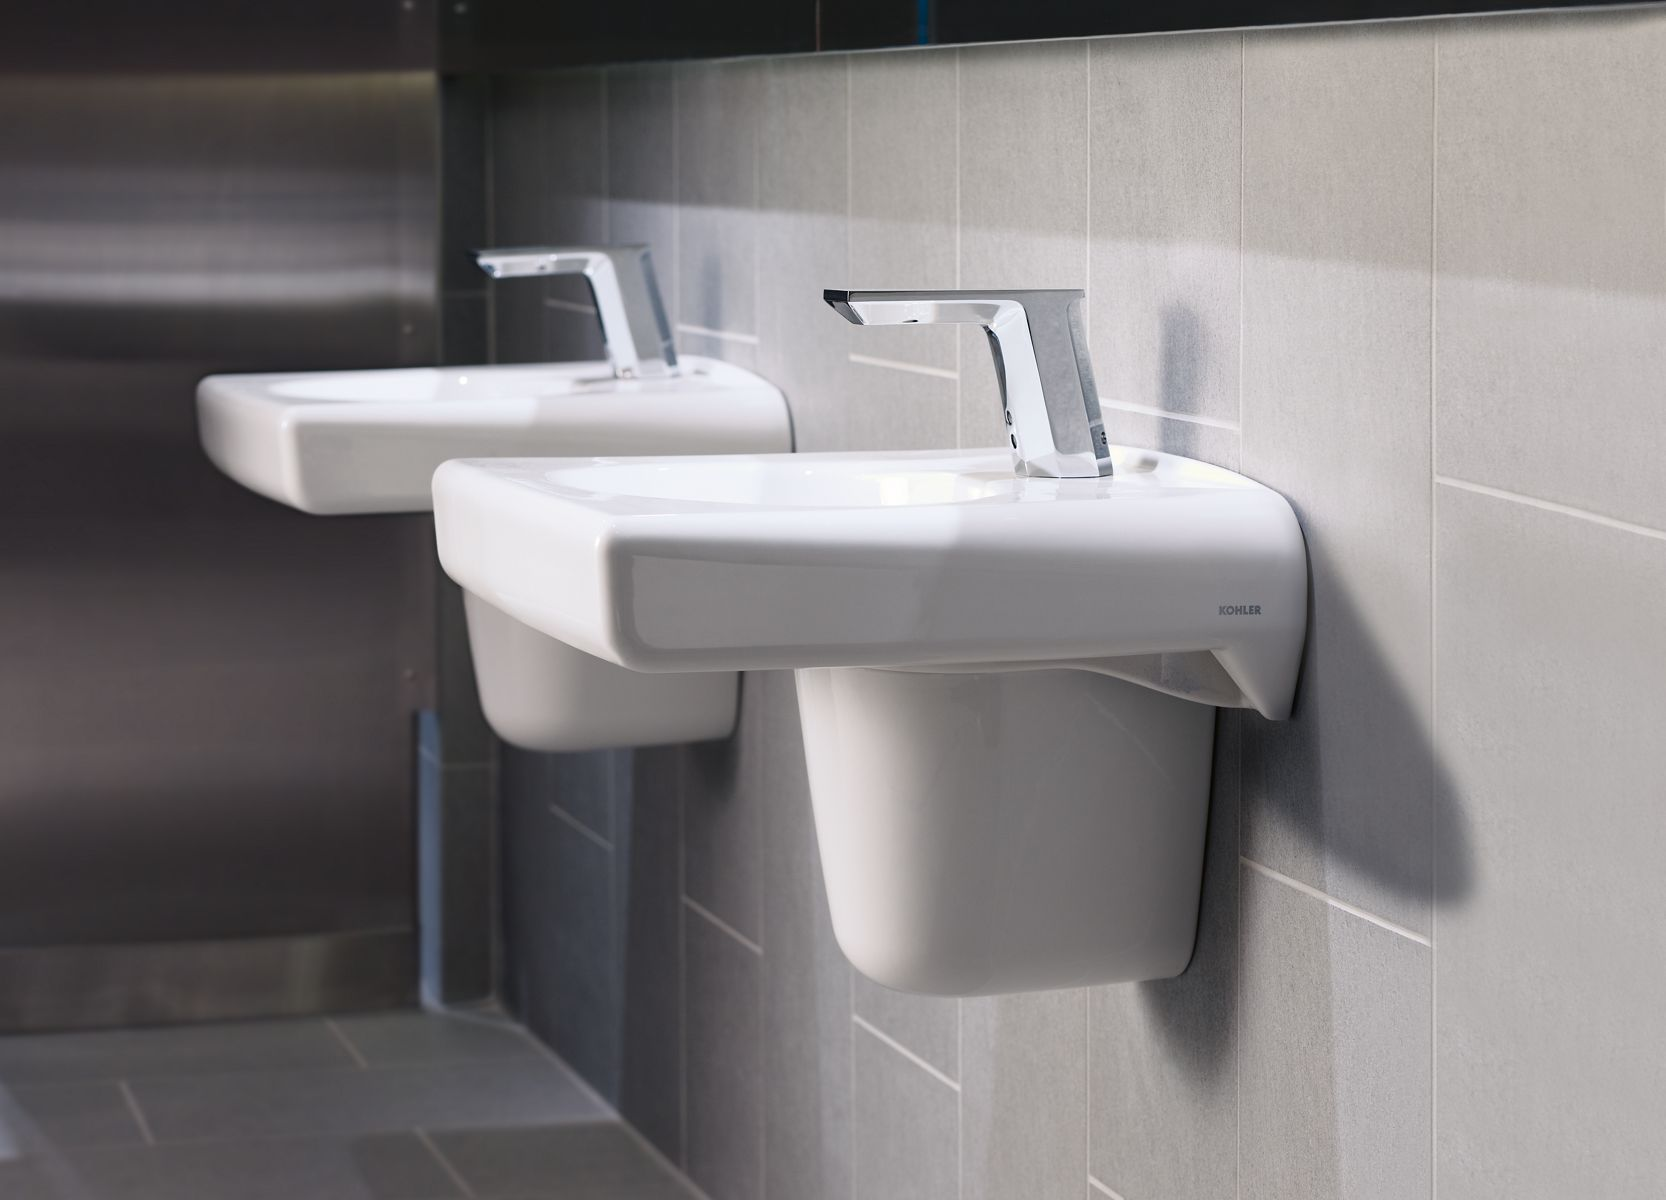 Commercial Bathroom Sink ada compliant products | kohler